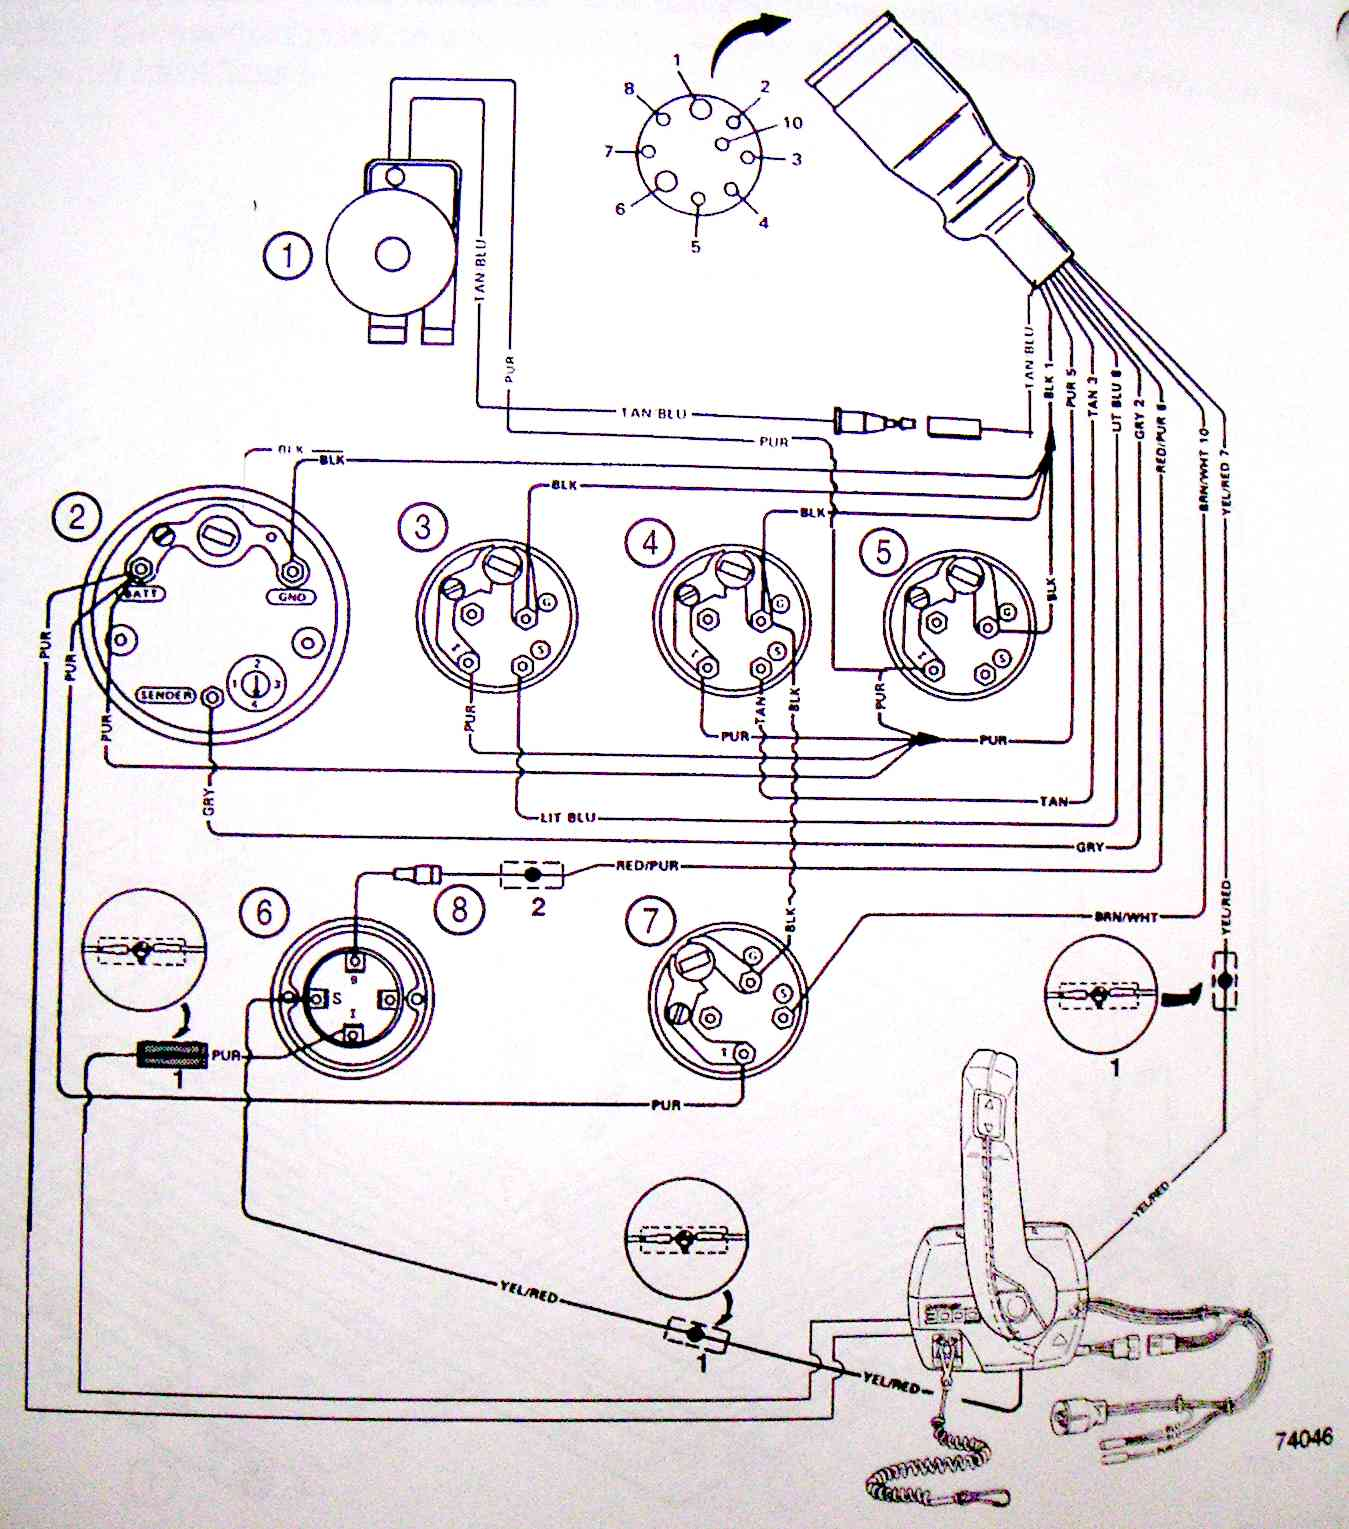 BoatHarness74046 michael's tractors (simplicity and allis chalmers garden tractors mercruiser 502 mpi wiring diagram at arjmand.co